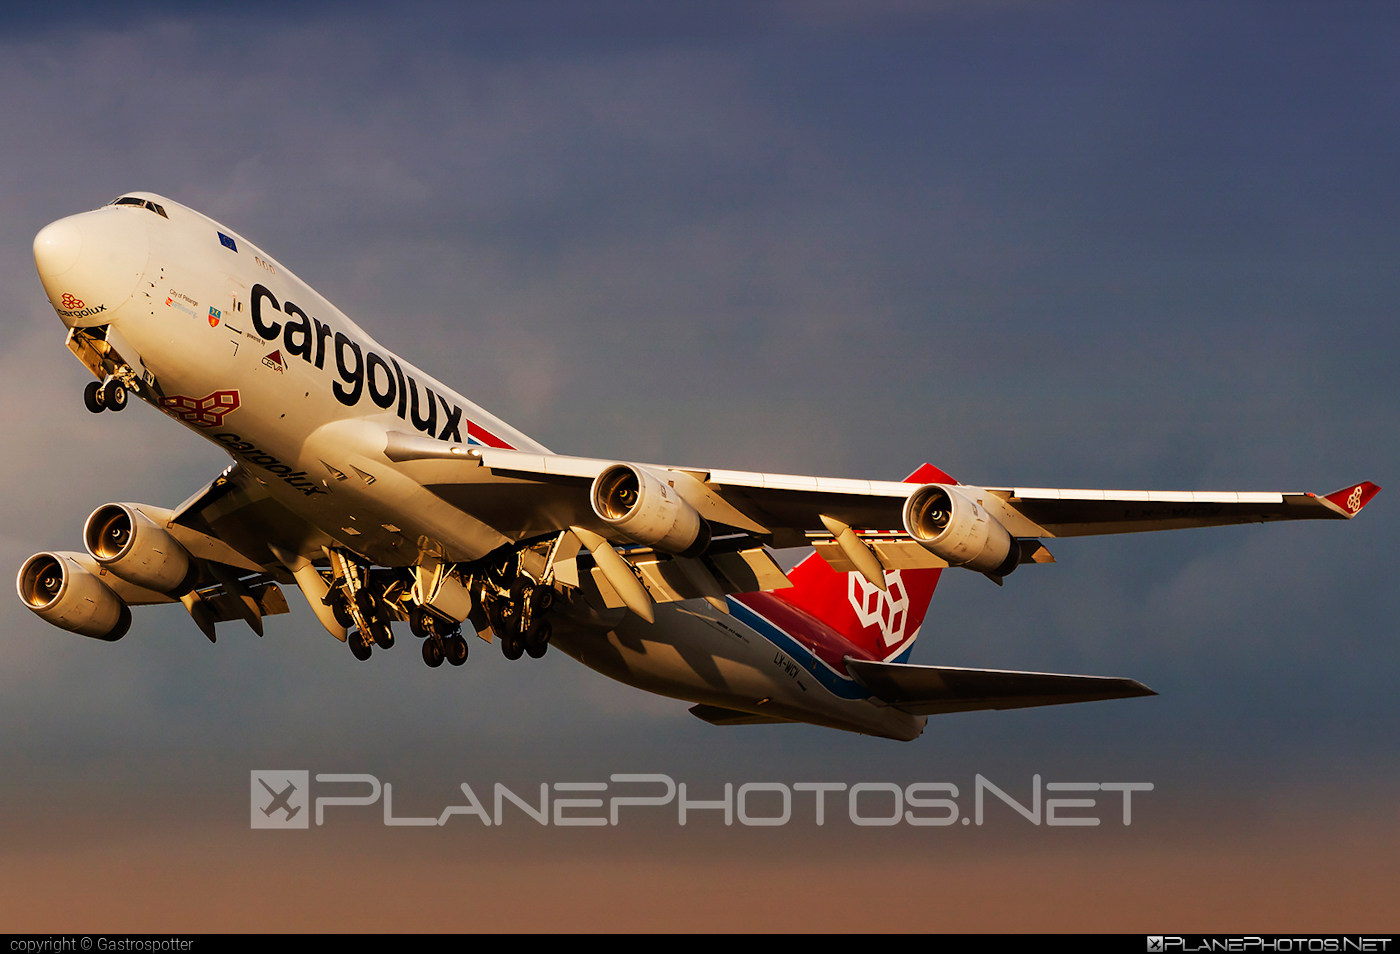 Boeing 747-400F - LX-WCV operated by Cargolux Airlines International #b747 #boeing #boeing747 #cargolux #jumbo